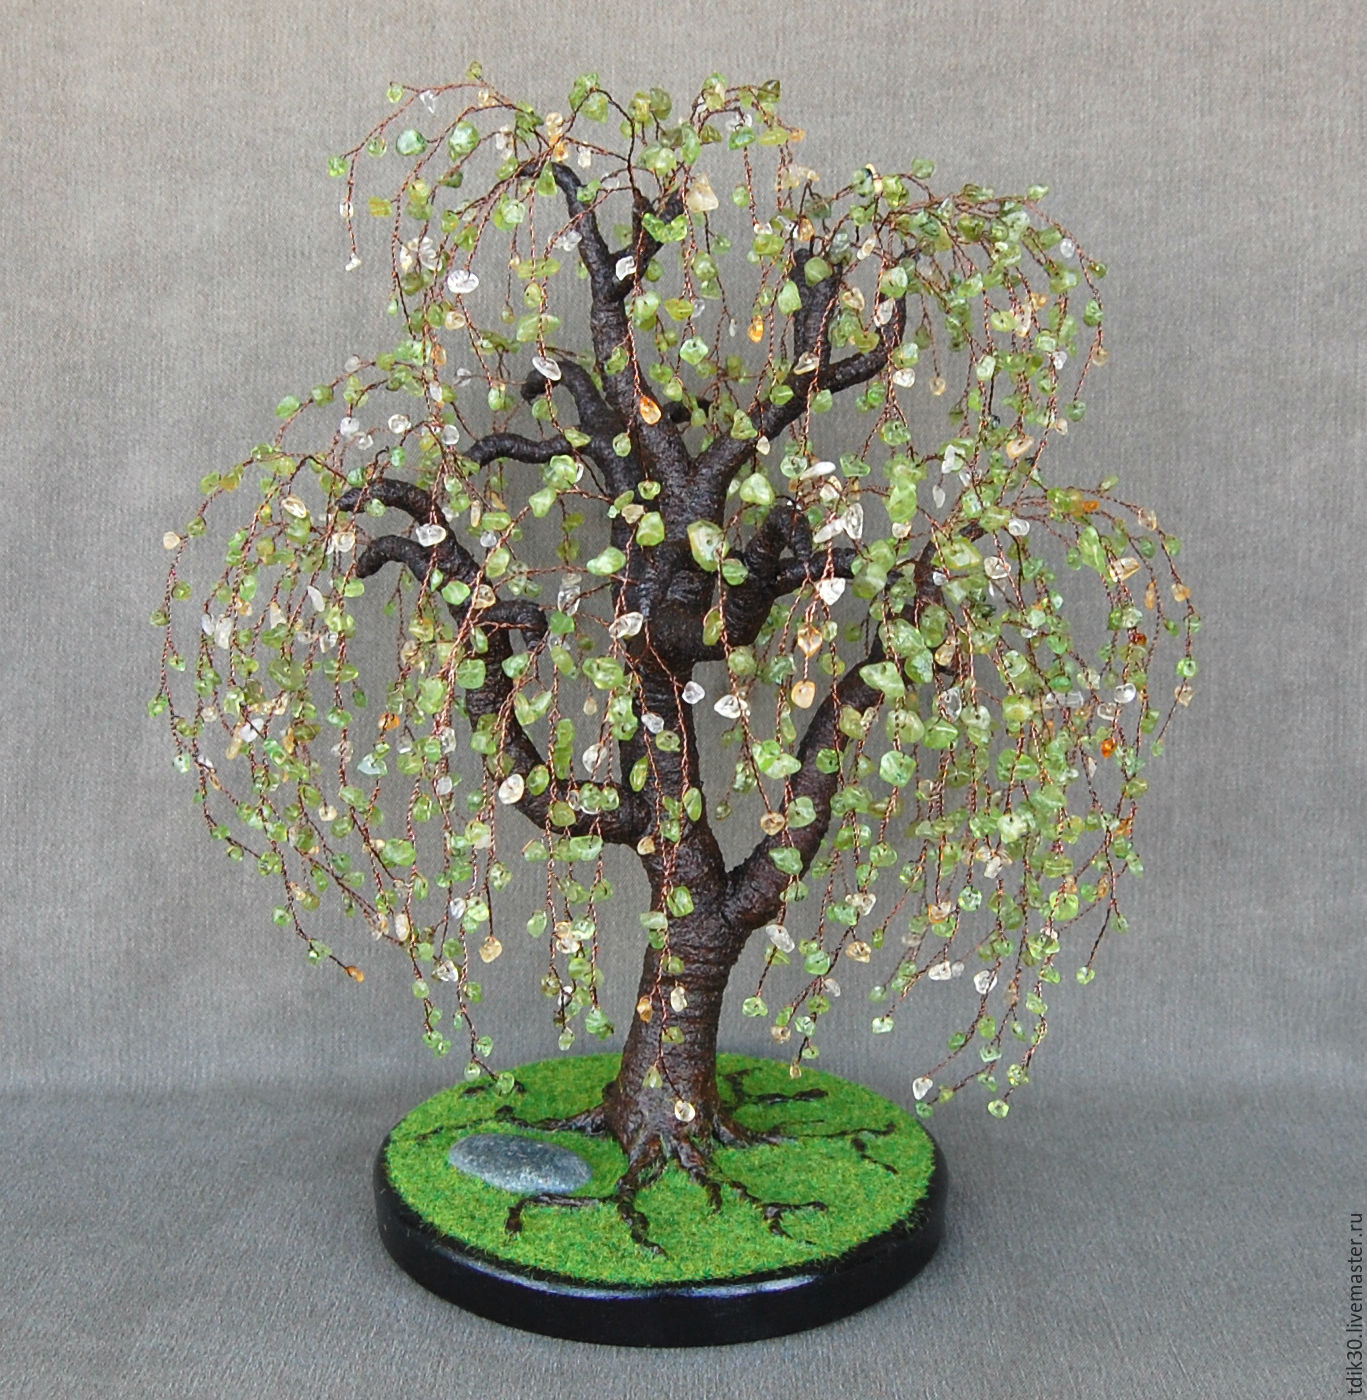 Simple Citrine Shop Online On Weeping Willow Bonsai Citrine Weeping Willow Tree Peridot Trees Livemaster Buy Weeping Willow Tree Ofperidot Sale Uk Japanese Weeping Willow Bonsai Tree houzz 01 Weeping Willow Bonsai